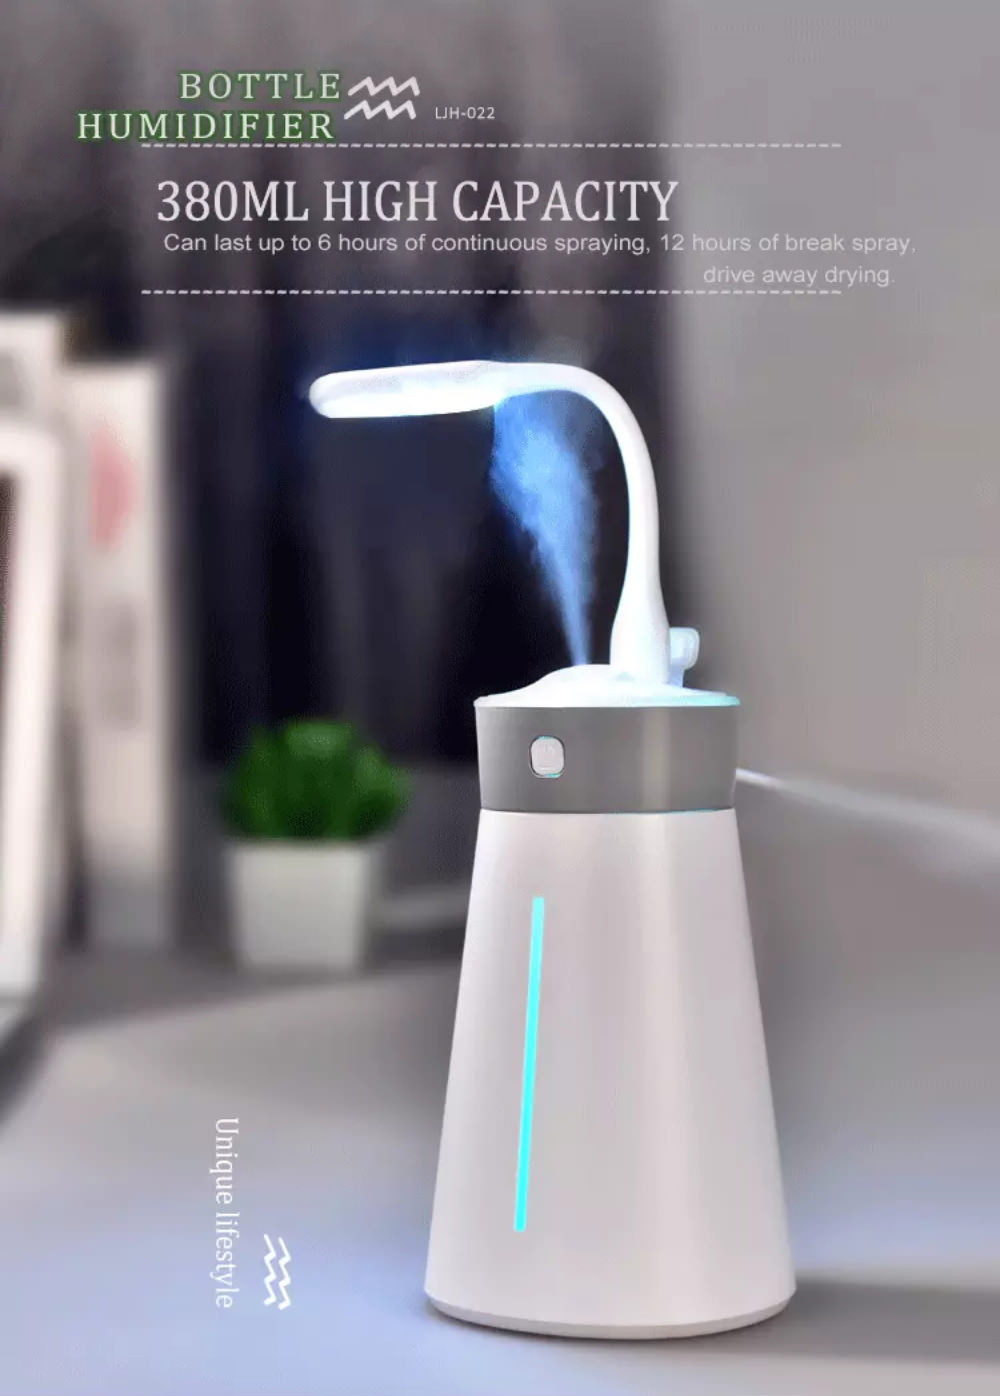 ljh-022 portable humidifier